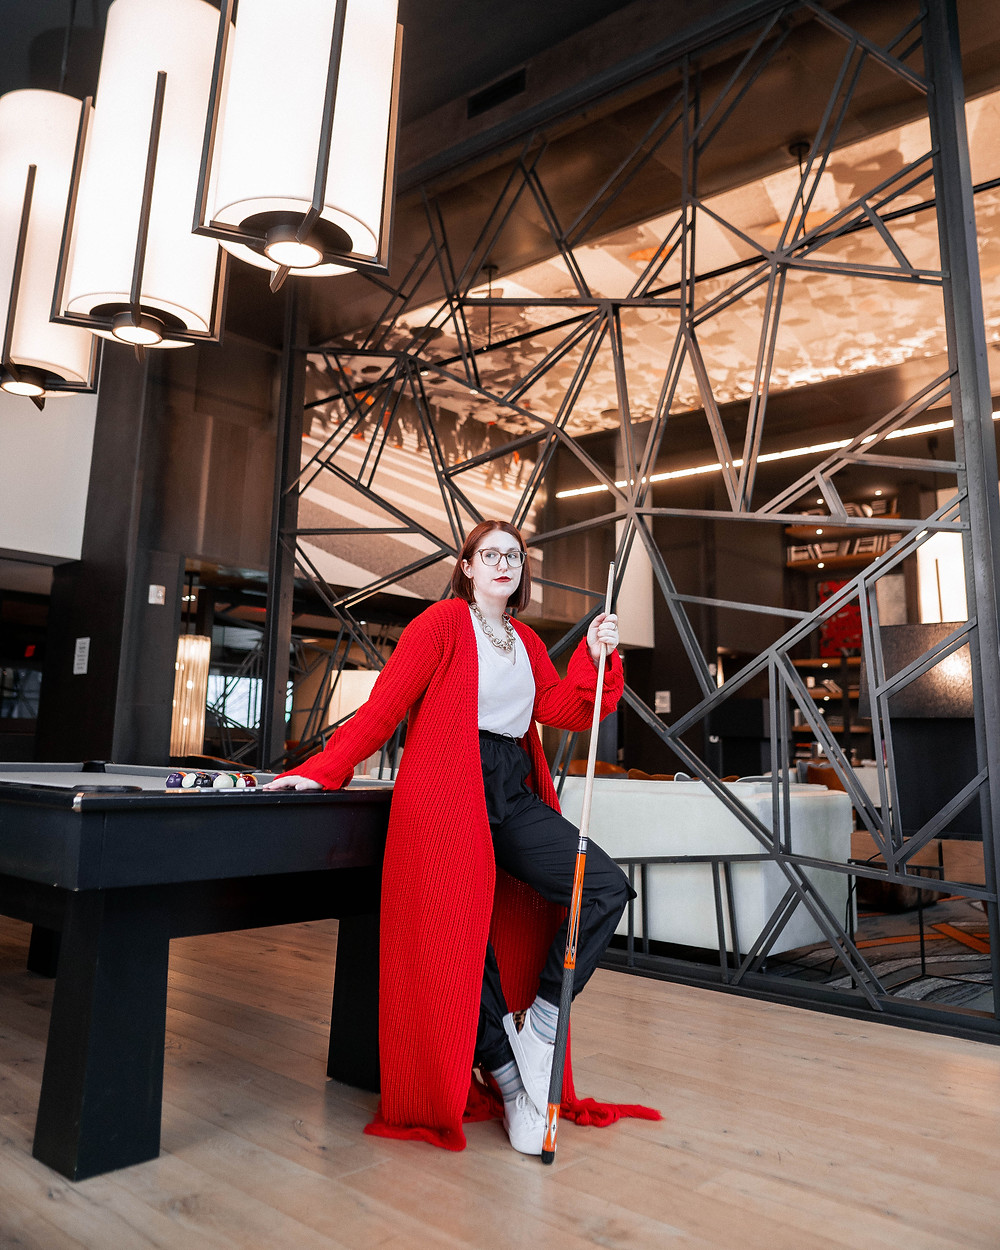 Taylor wearing a red maxi cardigan as leans against the pool table in Anthem House's community space.